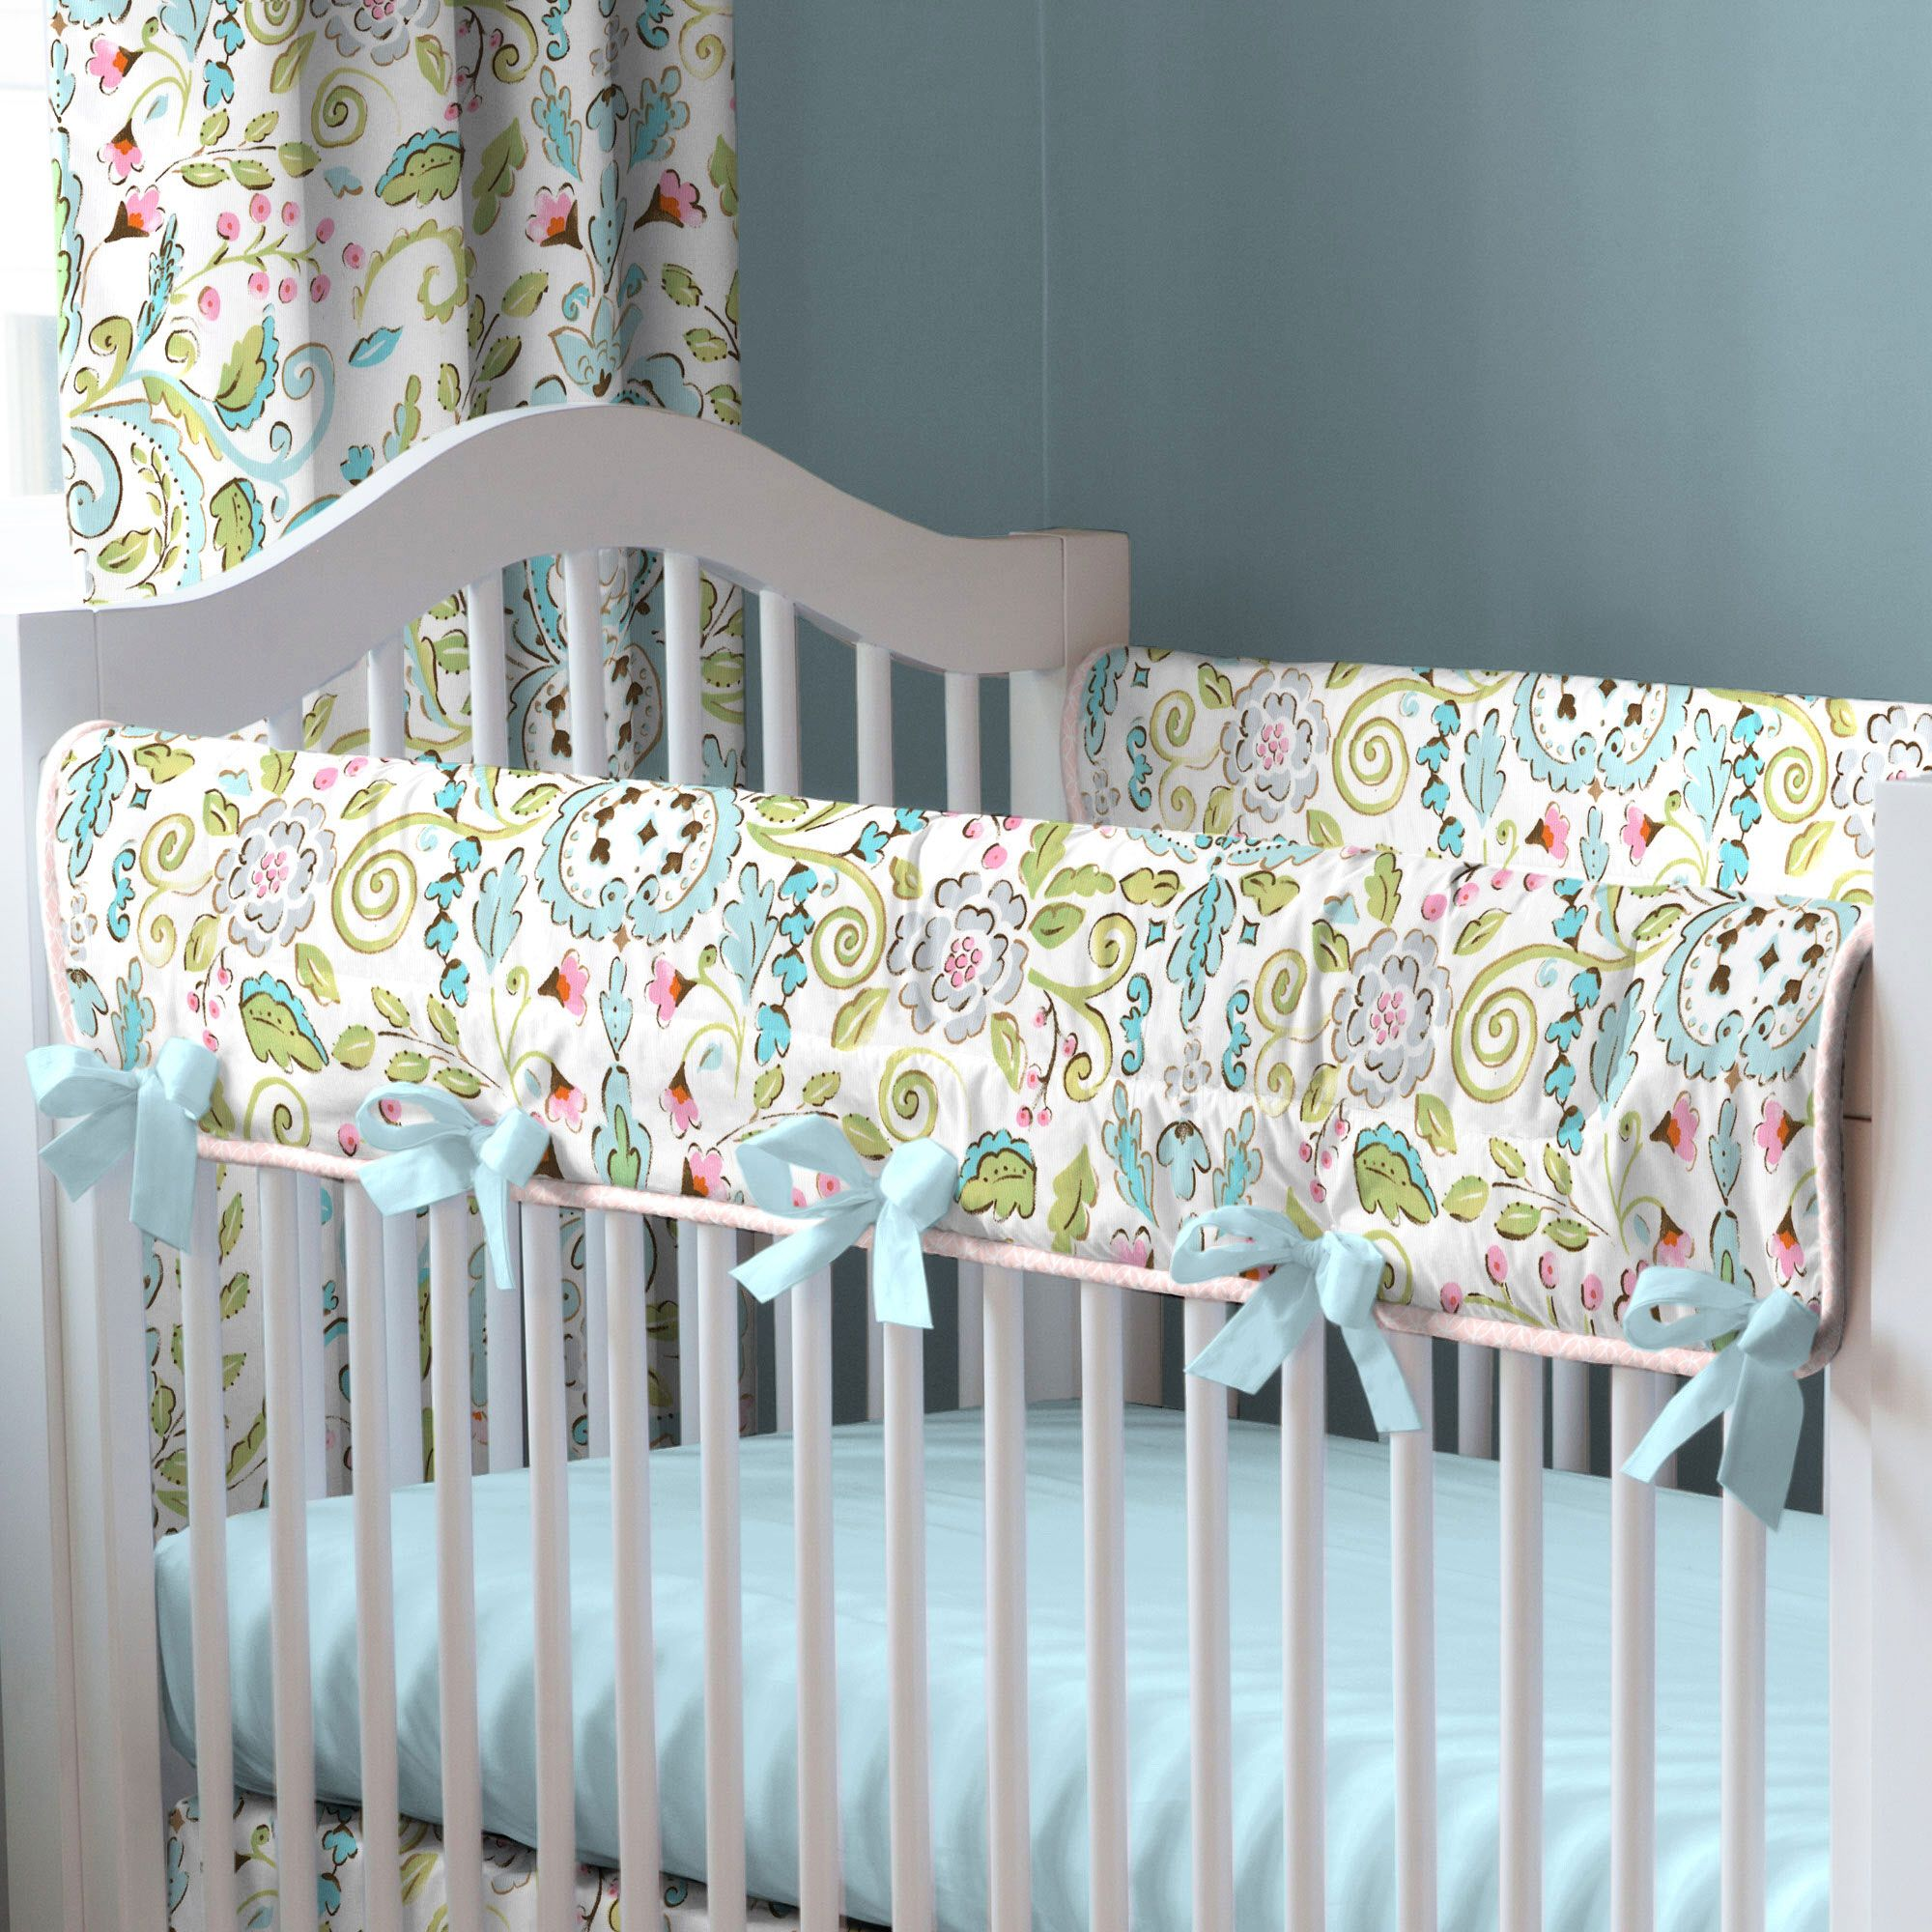 Love Birds Crib Rail Cover carouseldesigns Crib bedding